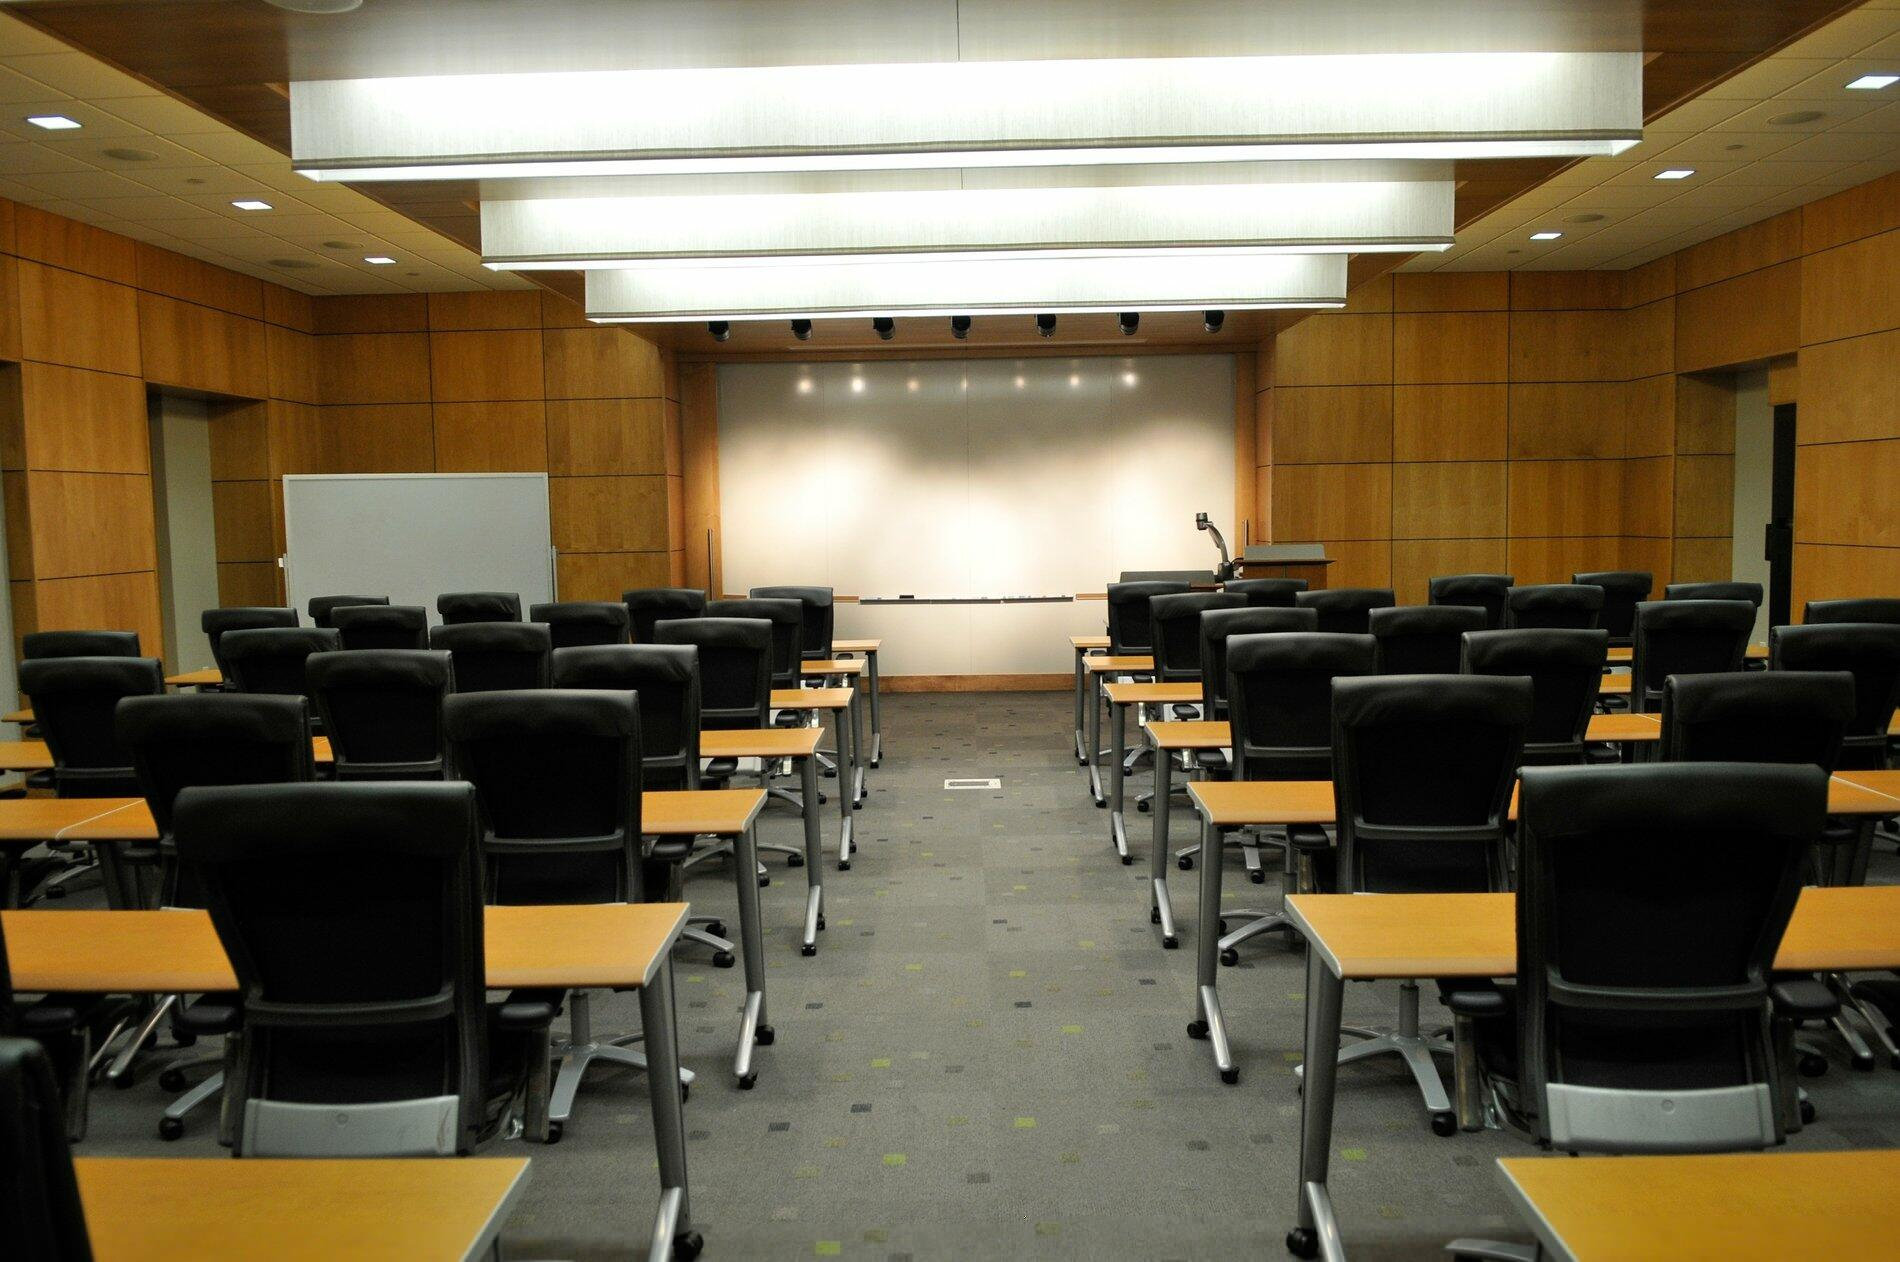 Conference room set up for meeting space